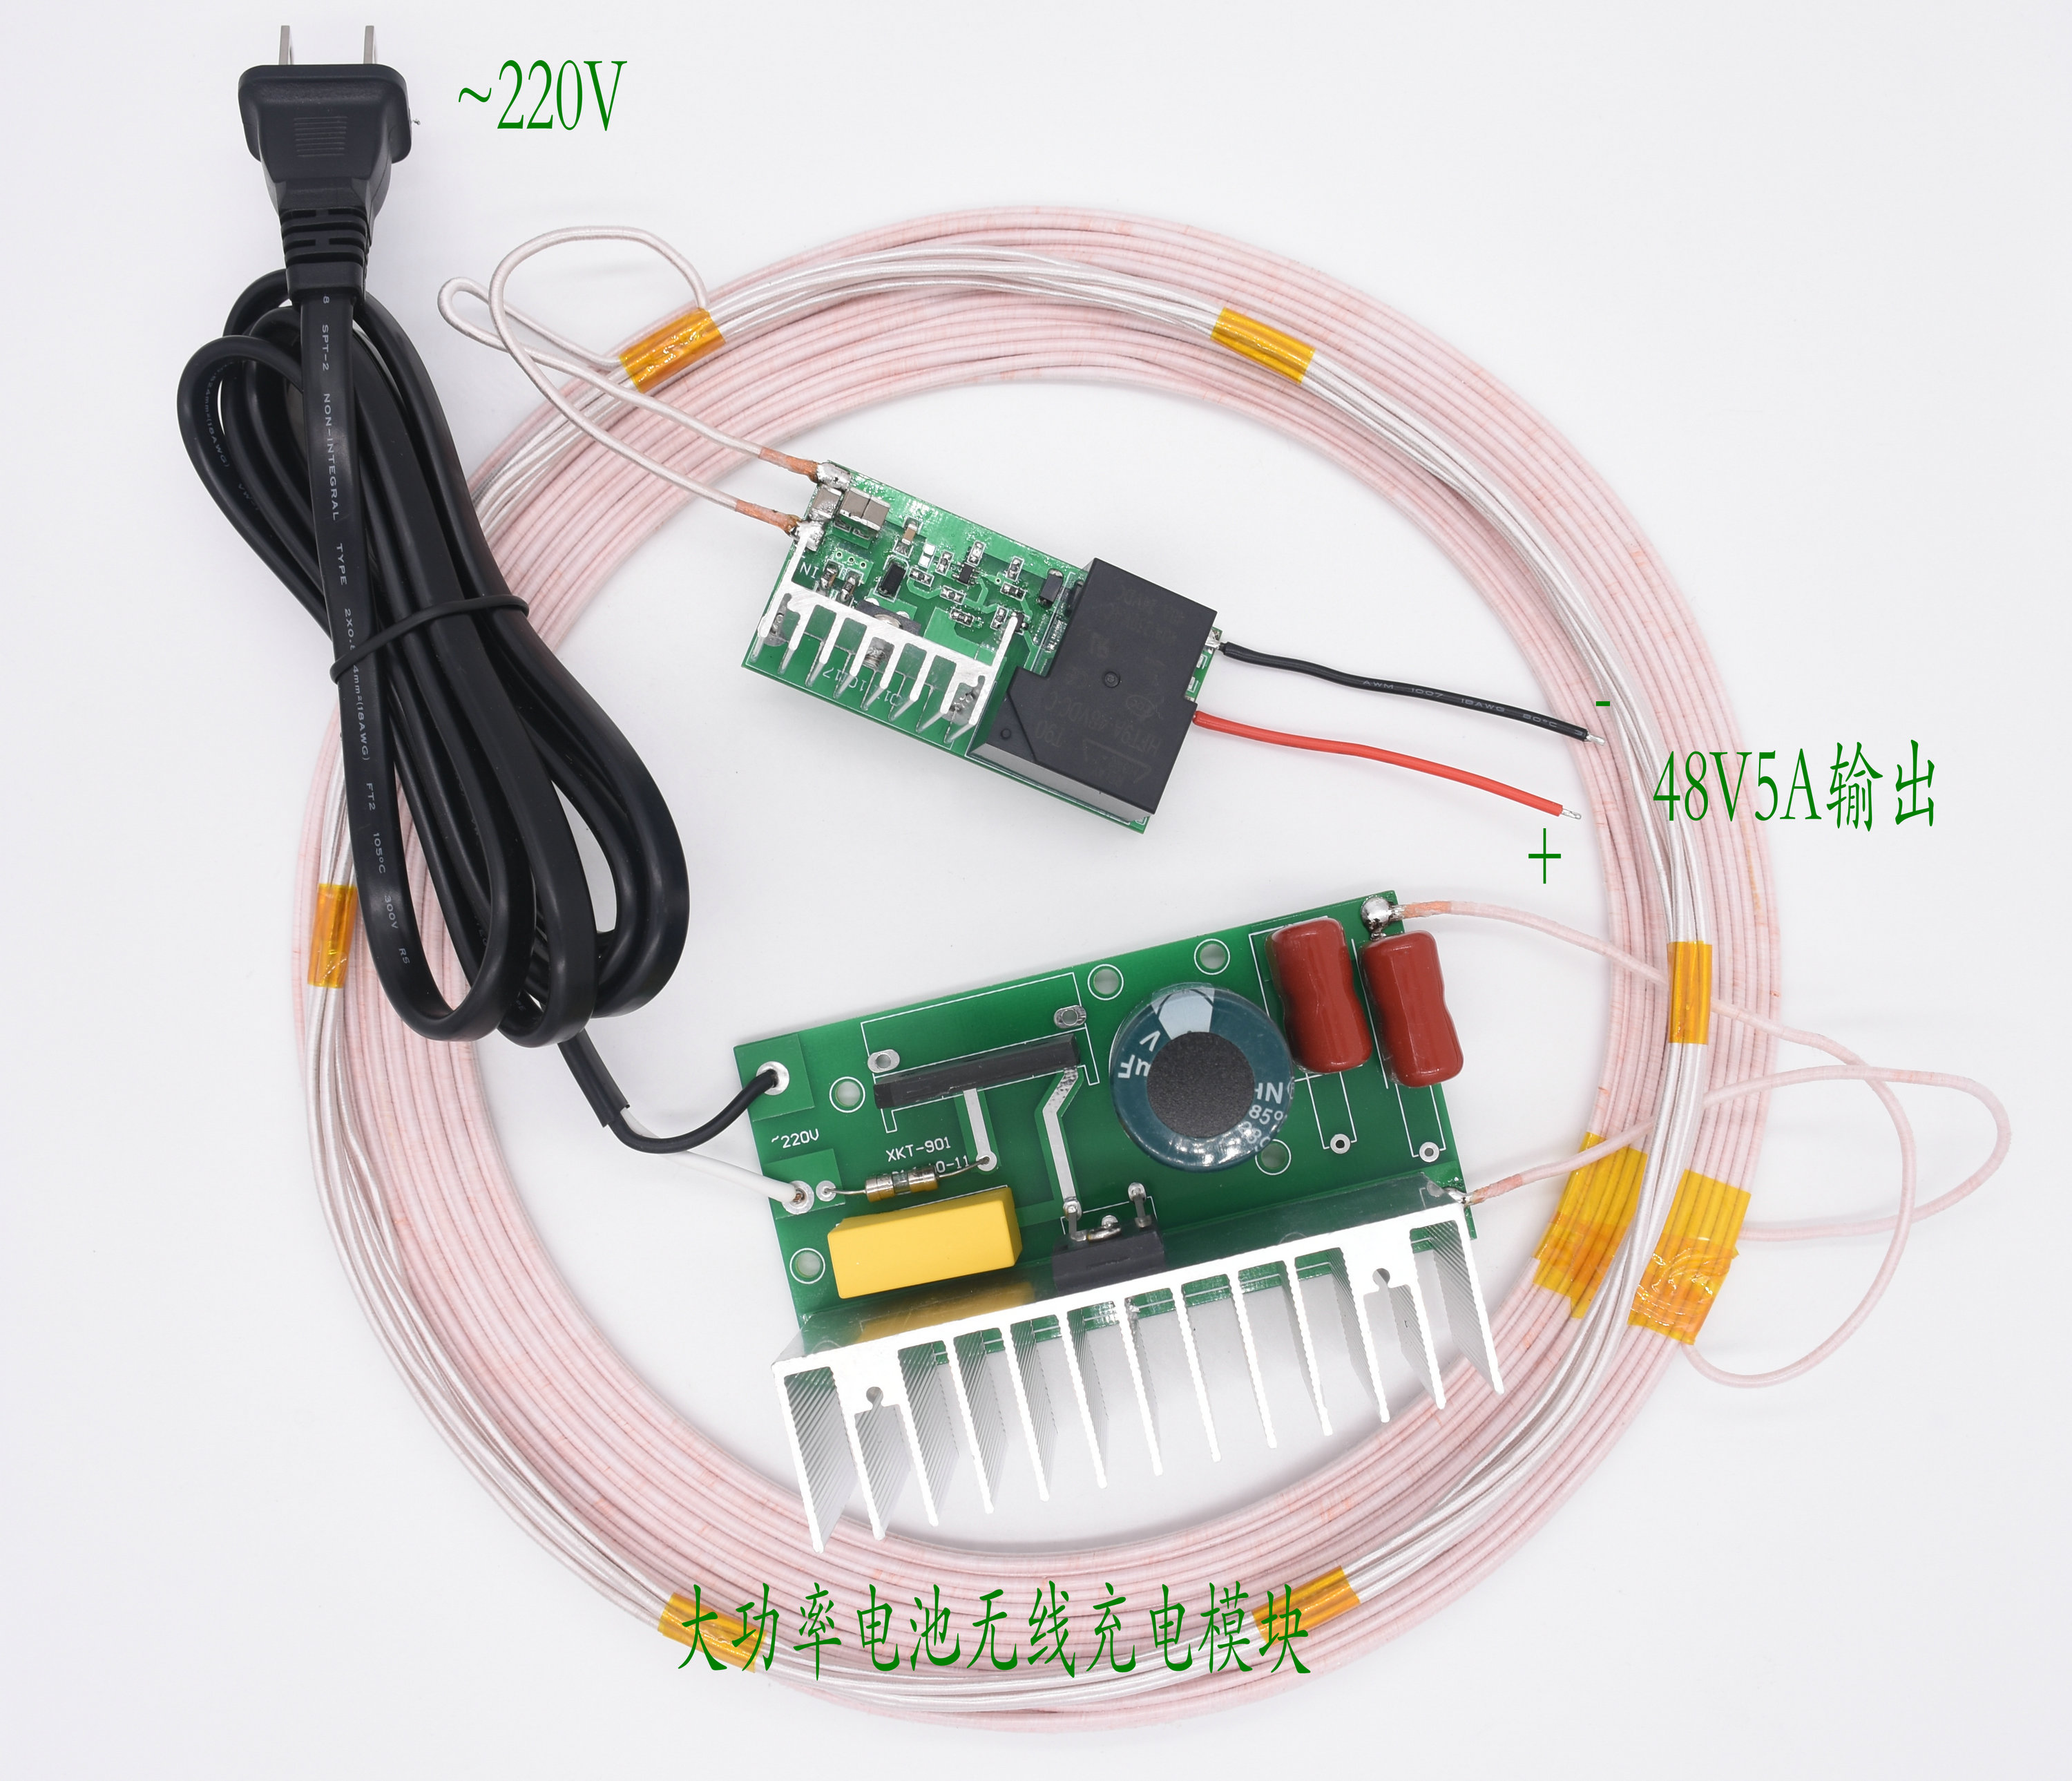 48V5A High Power Wireless Charging Module Wireless Transmission Module Wireless Power Supply Module XKT901-06 xkt 412 wireless charging module wireless power supply module high current wireless transmission module